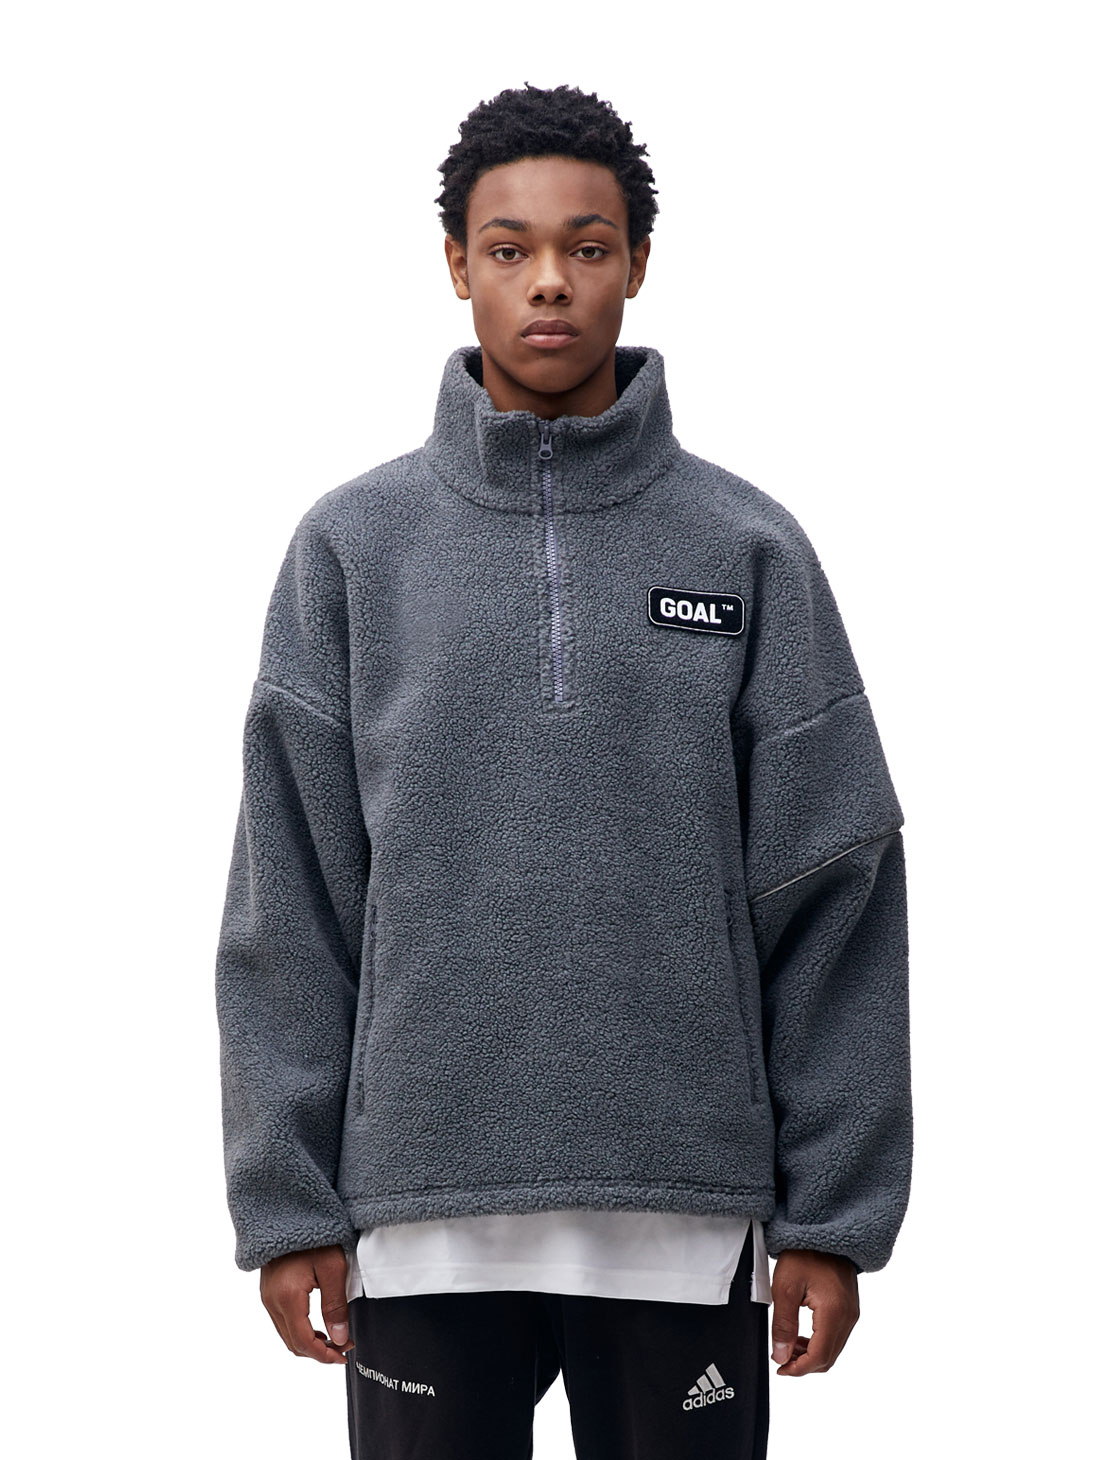 FLEECE ZIP UP PULLOVER - GRAY